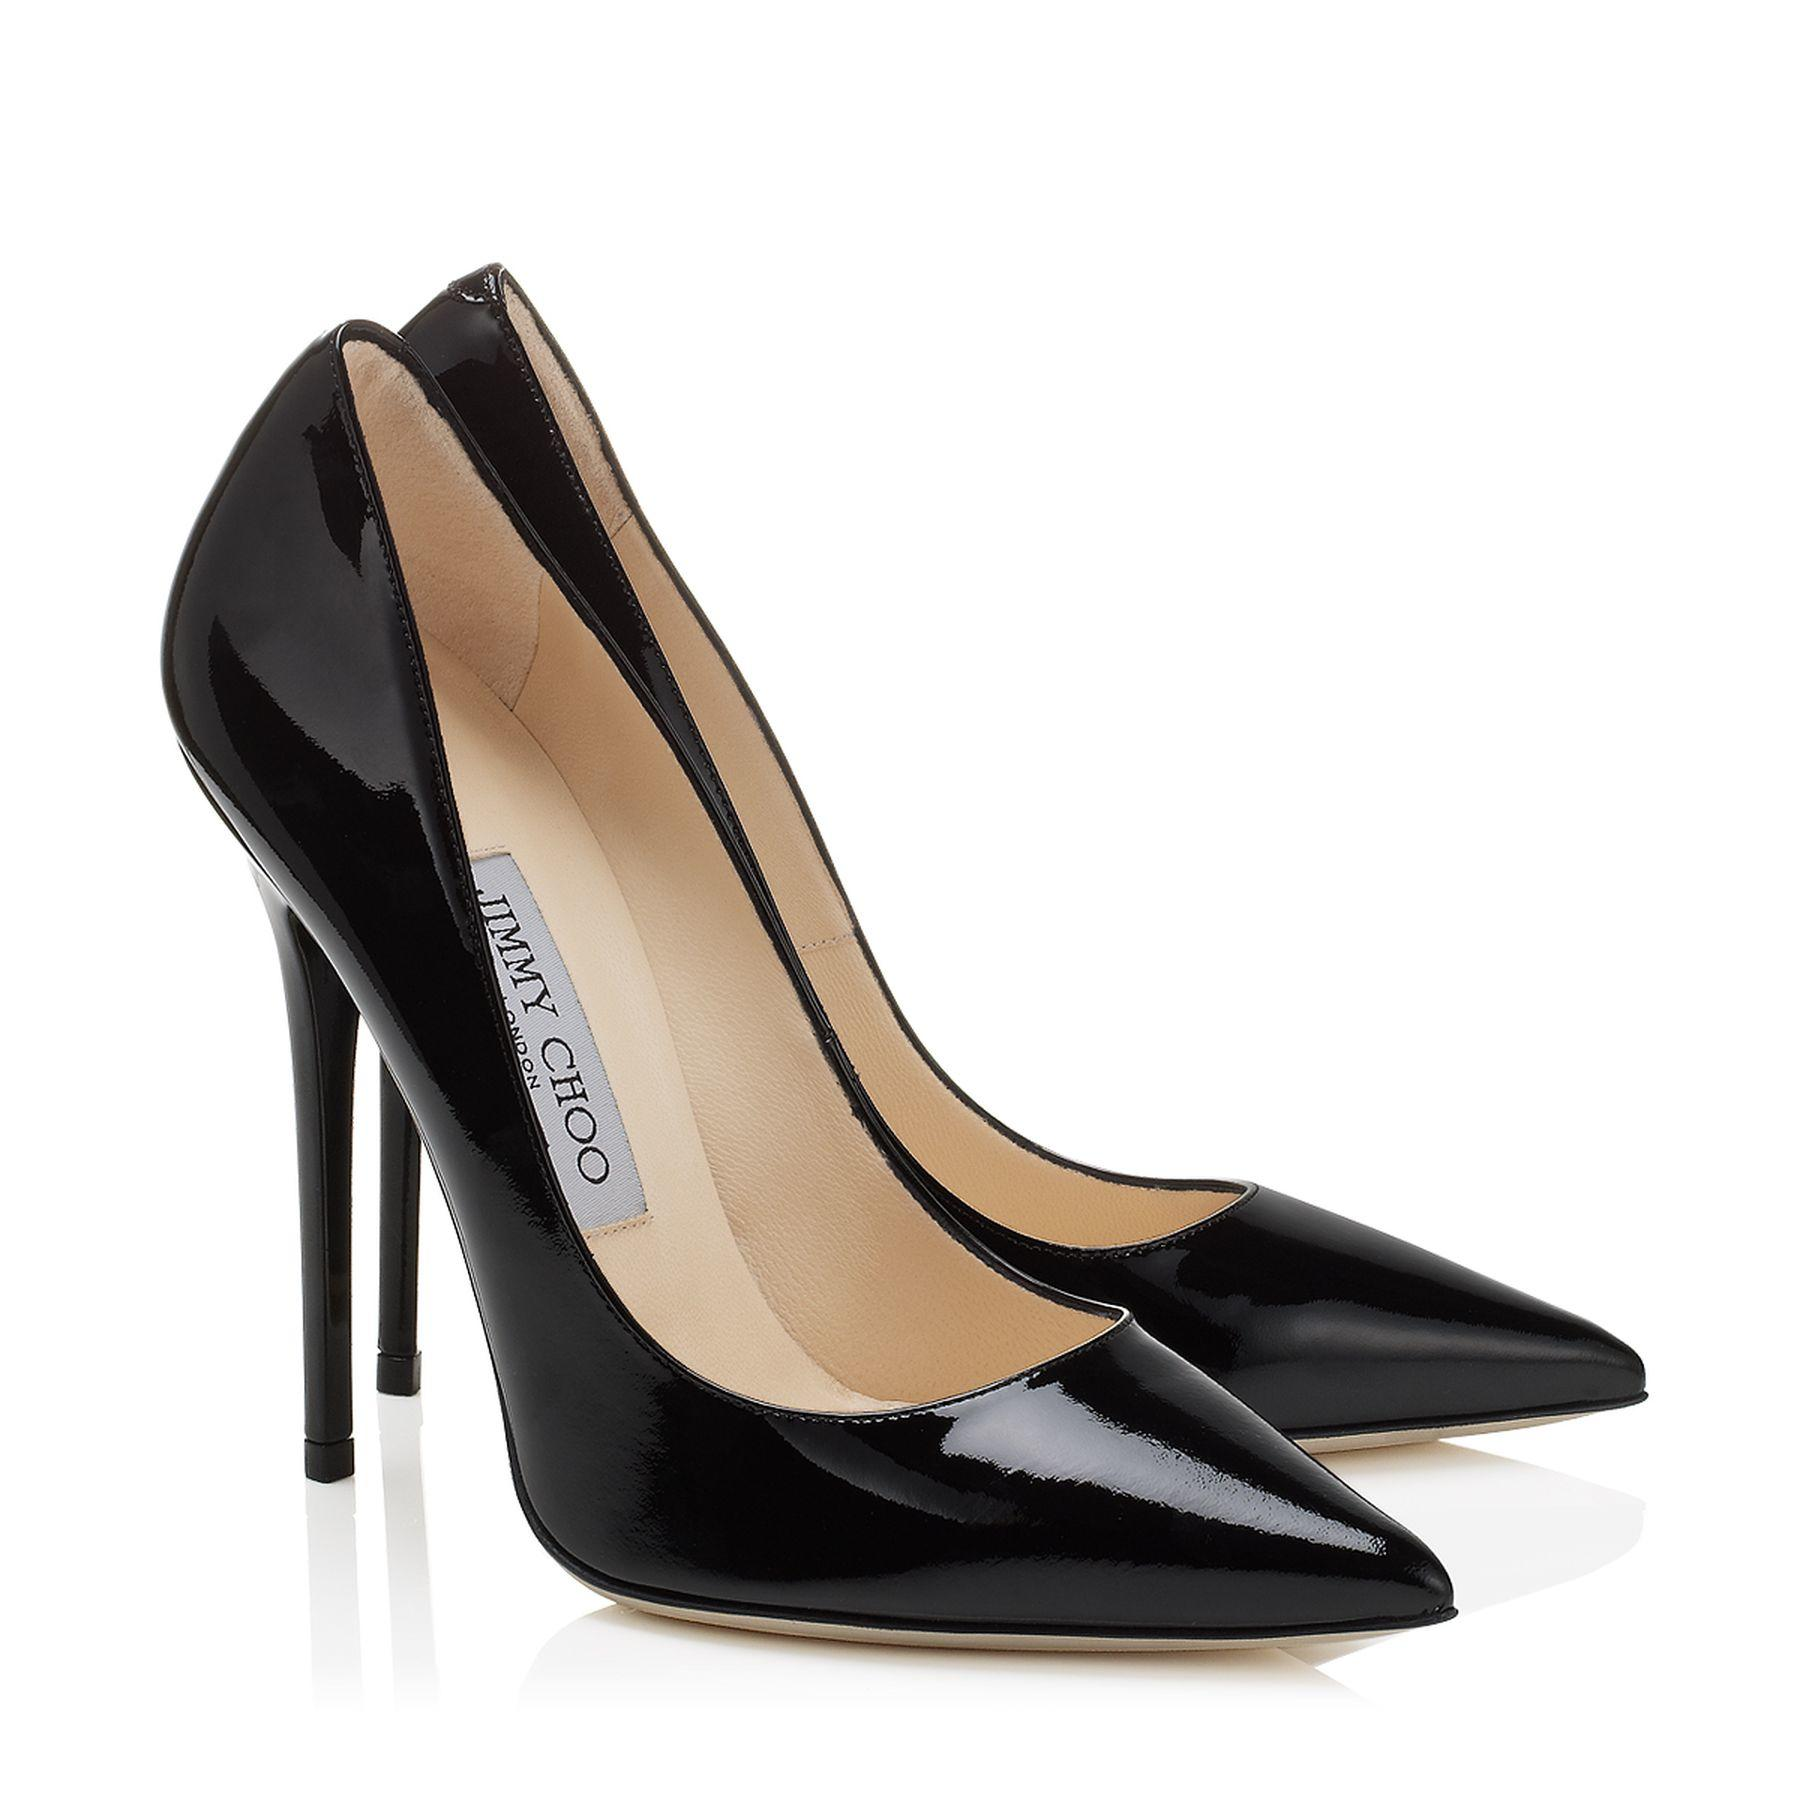 What Stores Sell Jimmy Choo Shoes